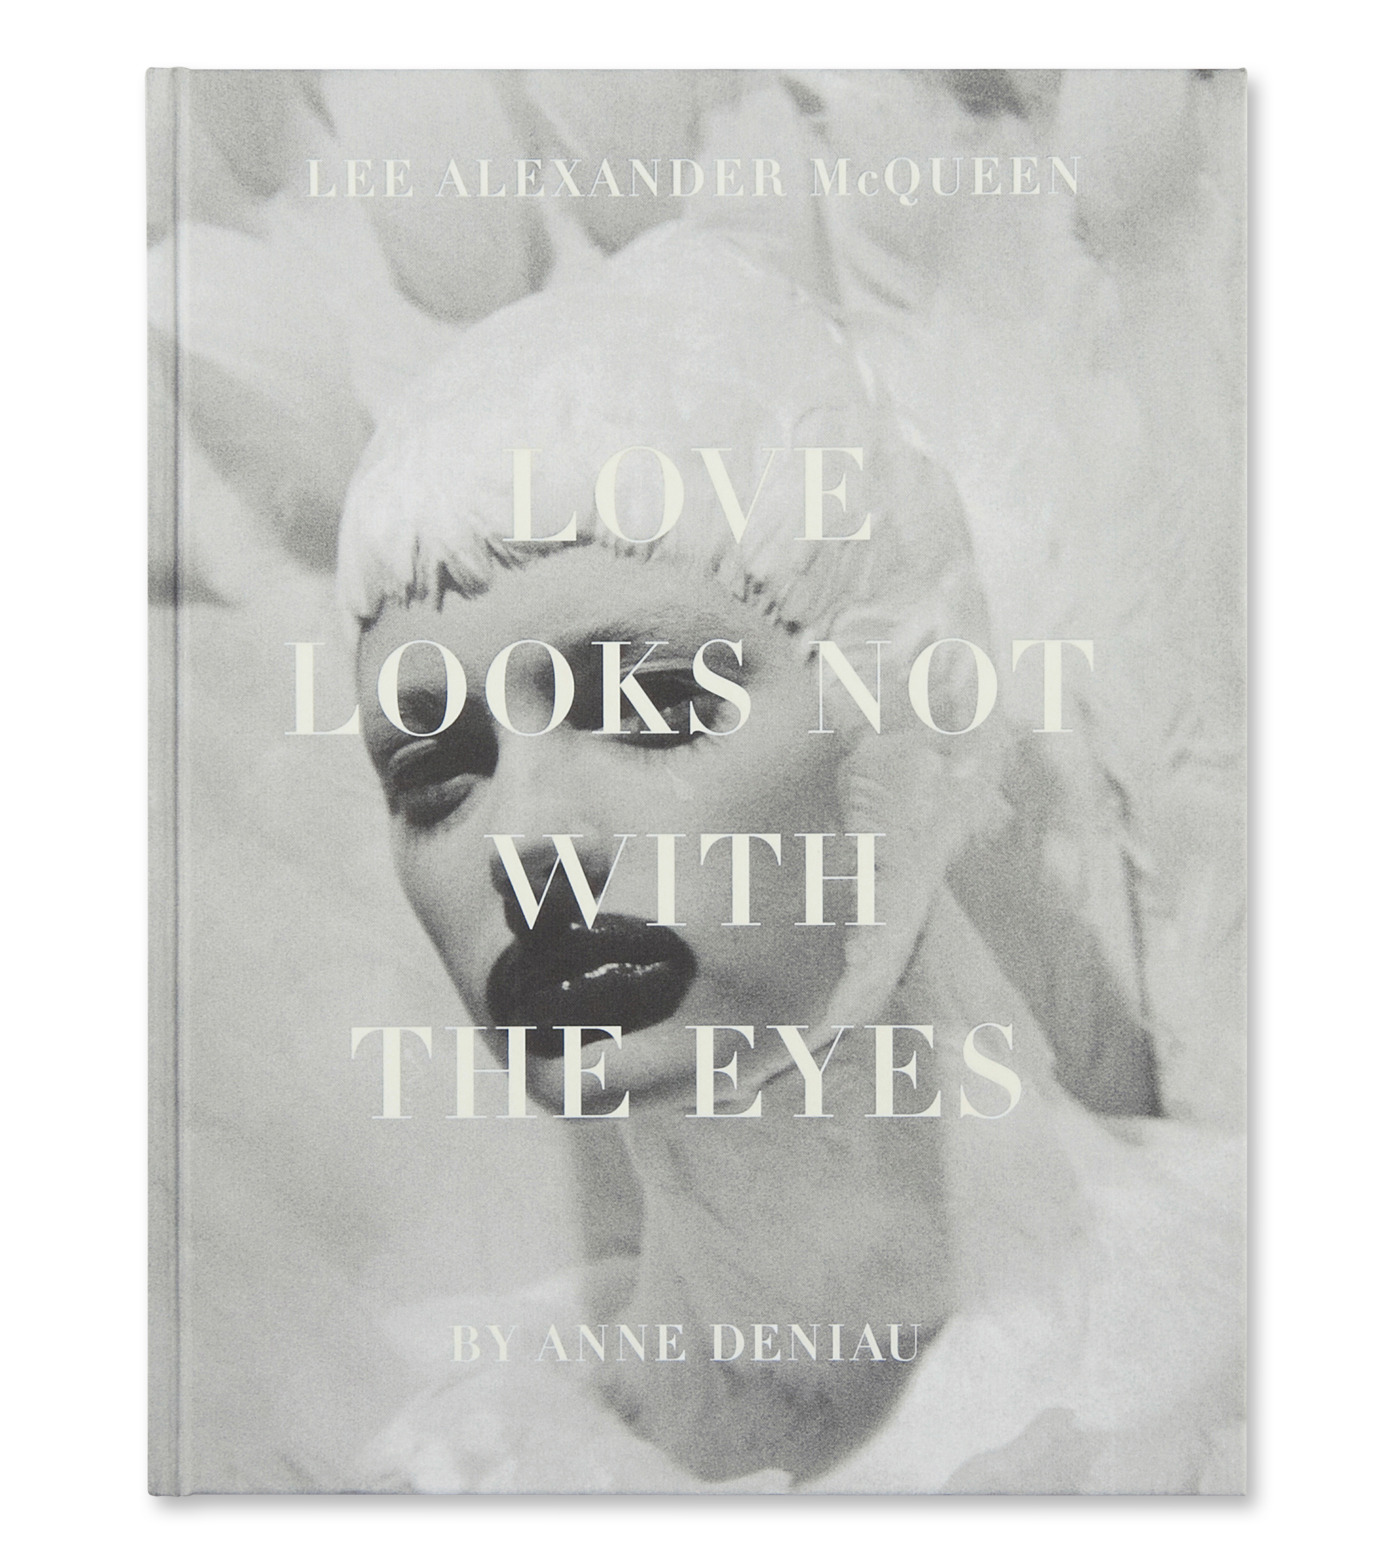 ArtBook(アートブック)のLove looks not with the eyes: thirteen years with lee alexander mcqueen.-GRAY(インテリア/OTHER-GOODS/interior/OTHER-GOODS)-4197-0448-2-11 拡大詳細画像1